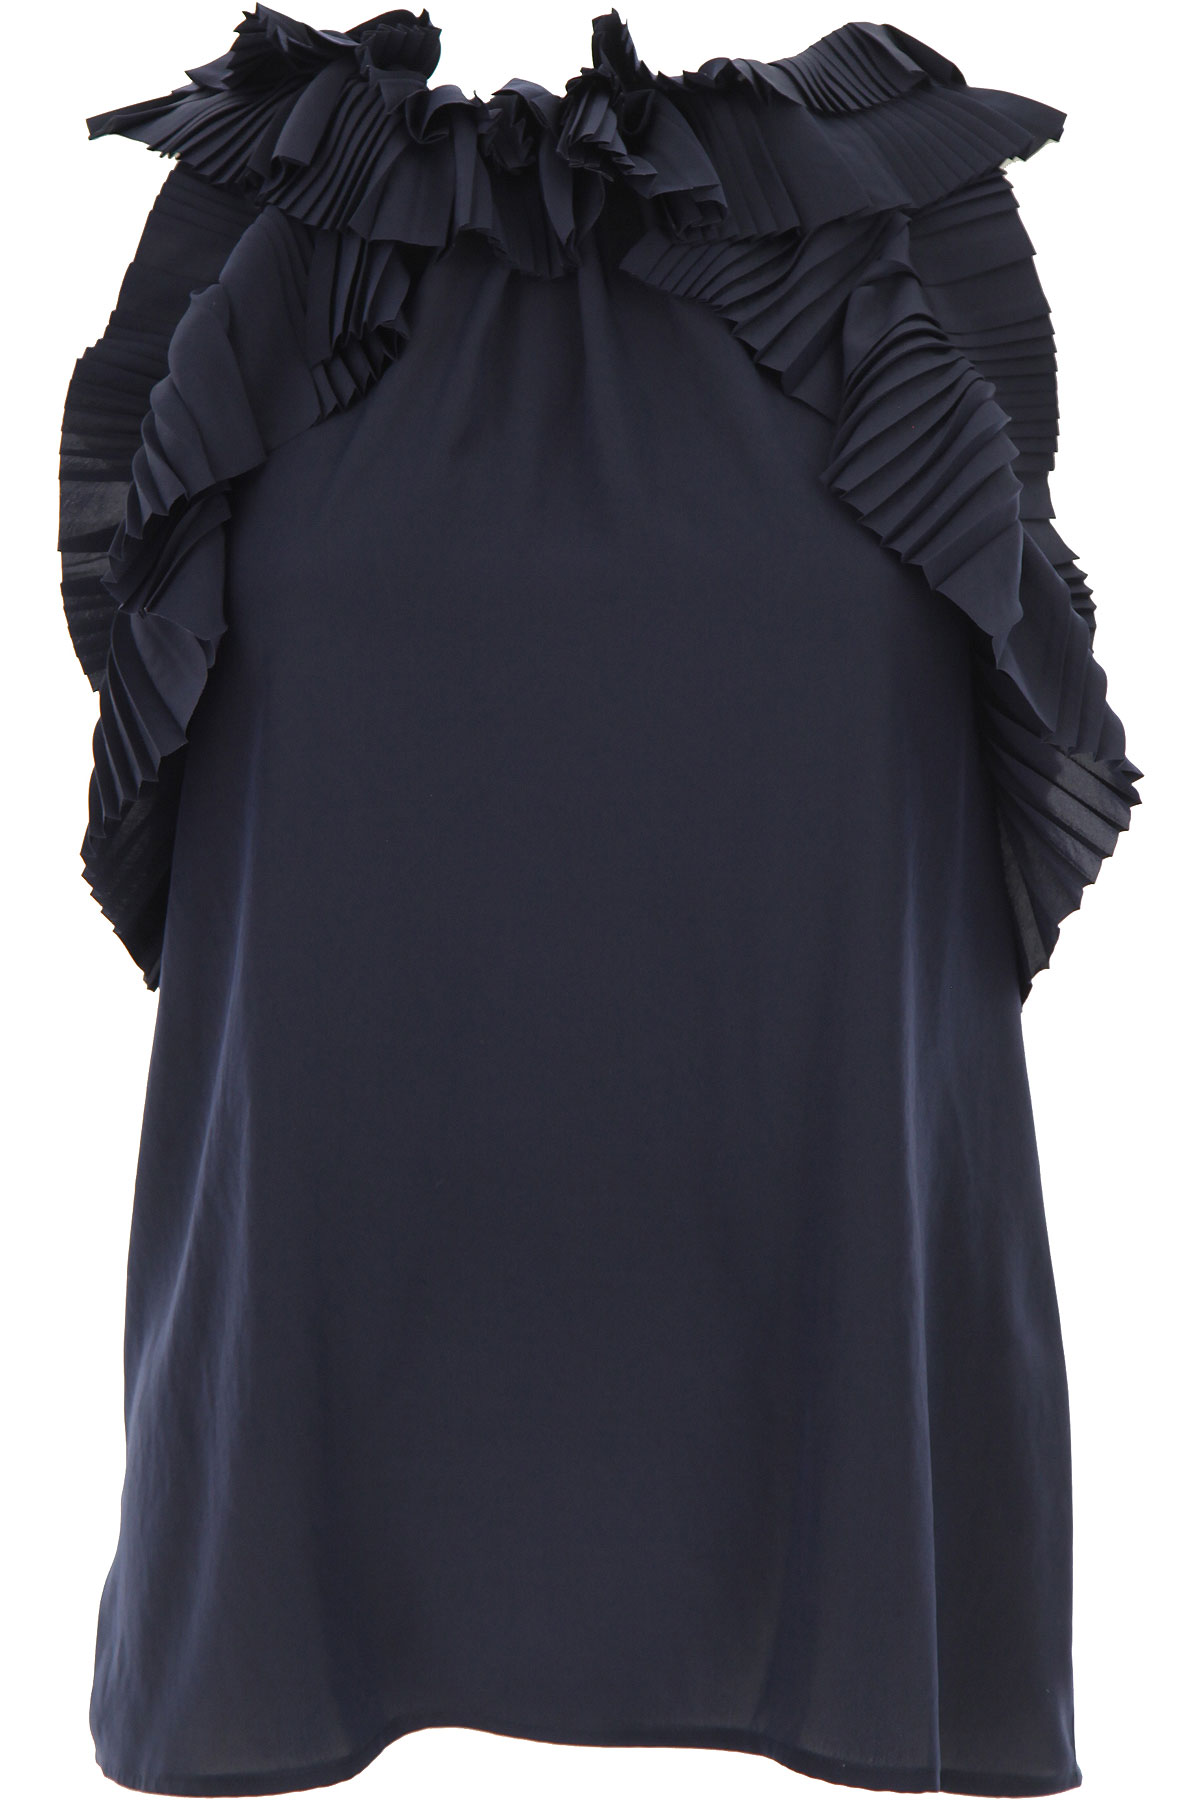 P.A.R.O.S.H. Top for Women On Sale, Midnight Blue, polyester, 2019, 6